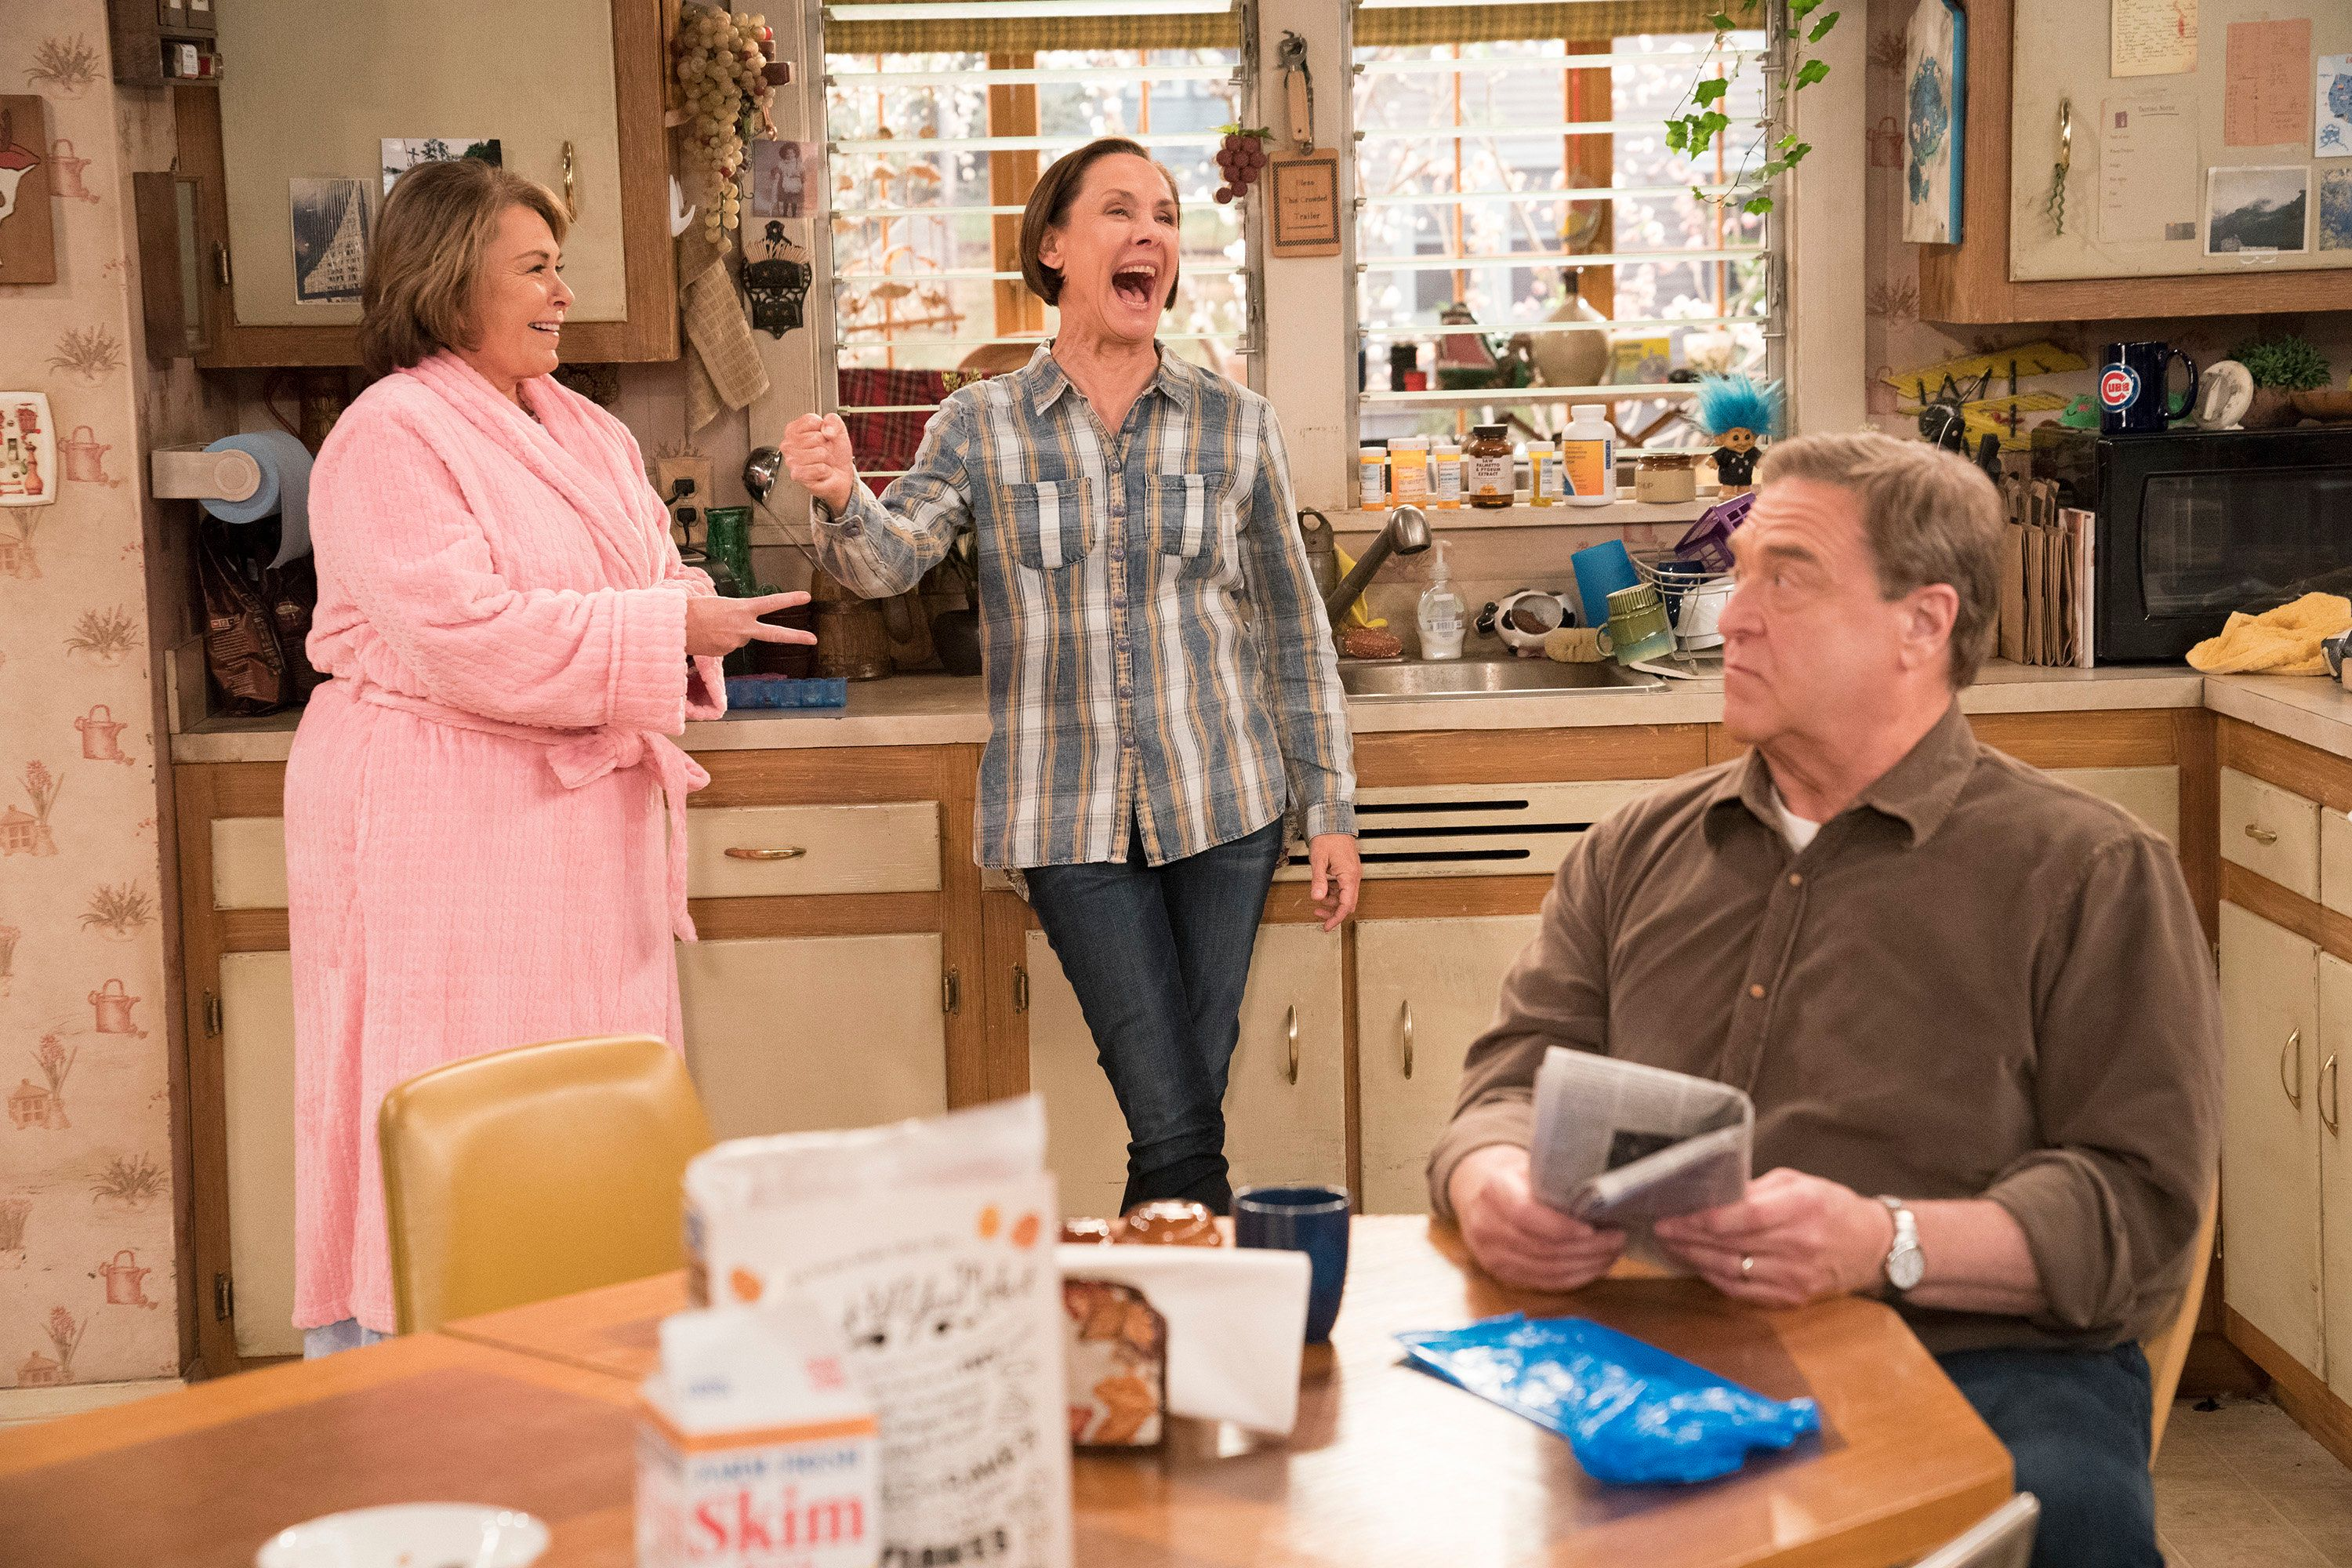 ROSEANNE - 'No Country for Old Women' - After Beverly gets kicked out of the nursing home, Roseanne and Jackie fight over who will take care of their mother. Meanwhile, Mark's creative touch with building a birdhouse for Dan's customer is more than Dan can handle, but Darlene defends her son, on the sixth episode of the revival of 'Roseanne,' TUESDAY, MAY 1 (8:00-8:30 p.m. EDT), on The ABC Television Network. (Greg Gayne/ABC via Getty Images) ROSEANNE BARR, LAURIE METCALF, JOHN GOODMAN